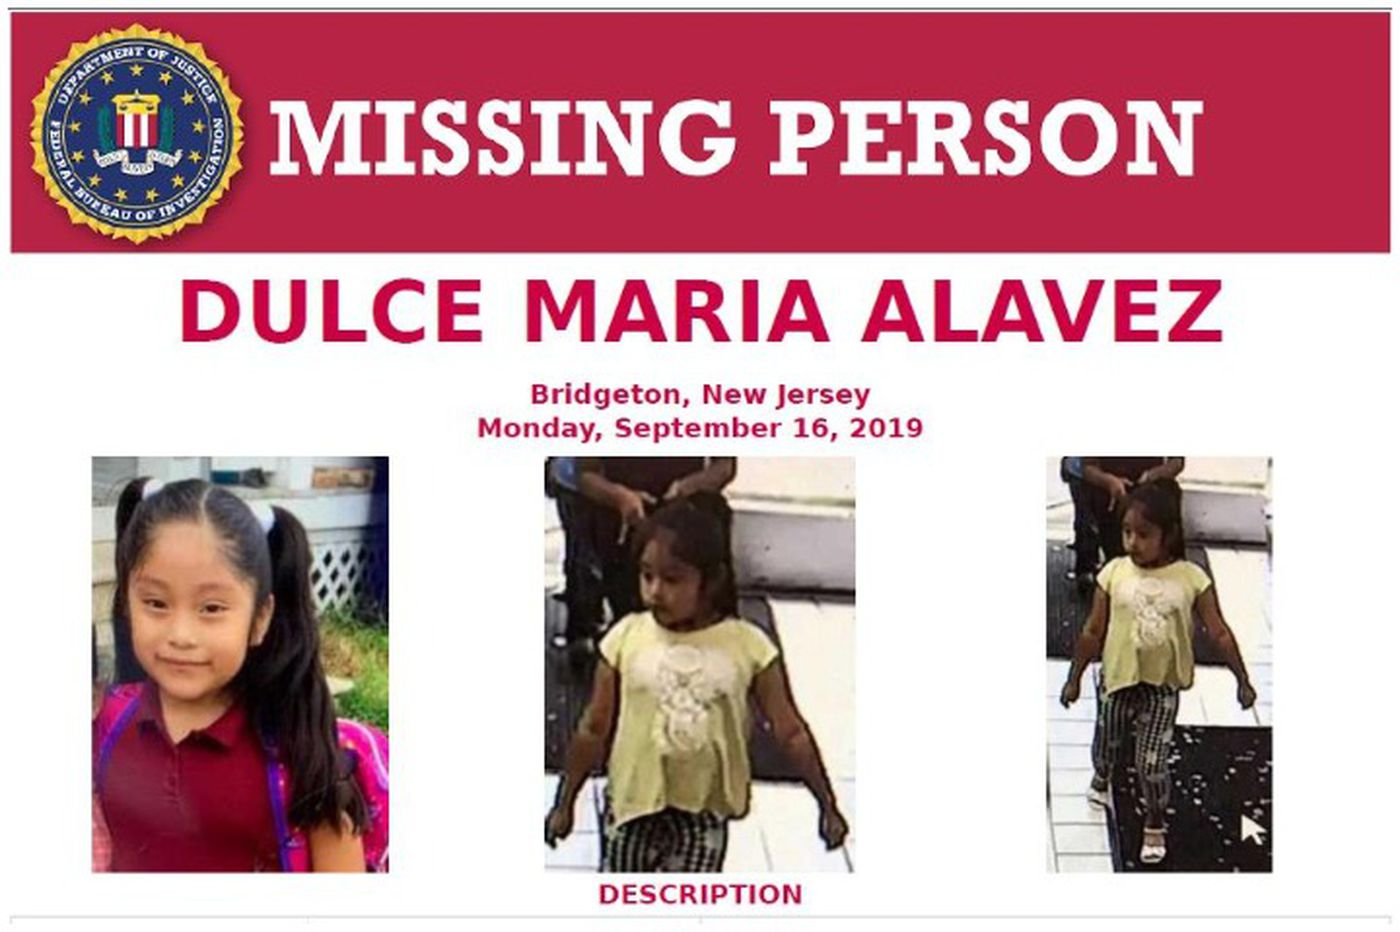 Dulce Maria Alavez joins 9 others from Philly area on FBI list of high-profile missing-person cases